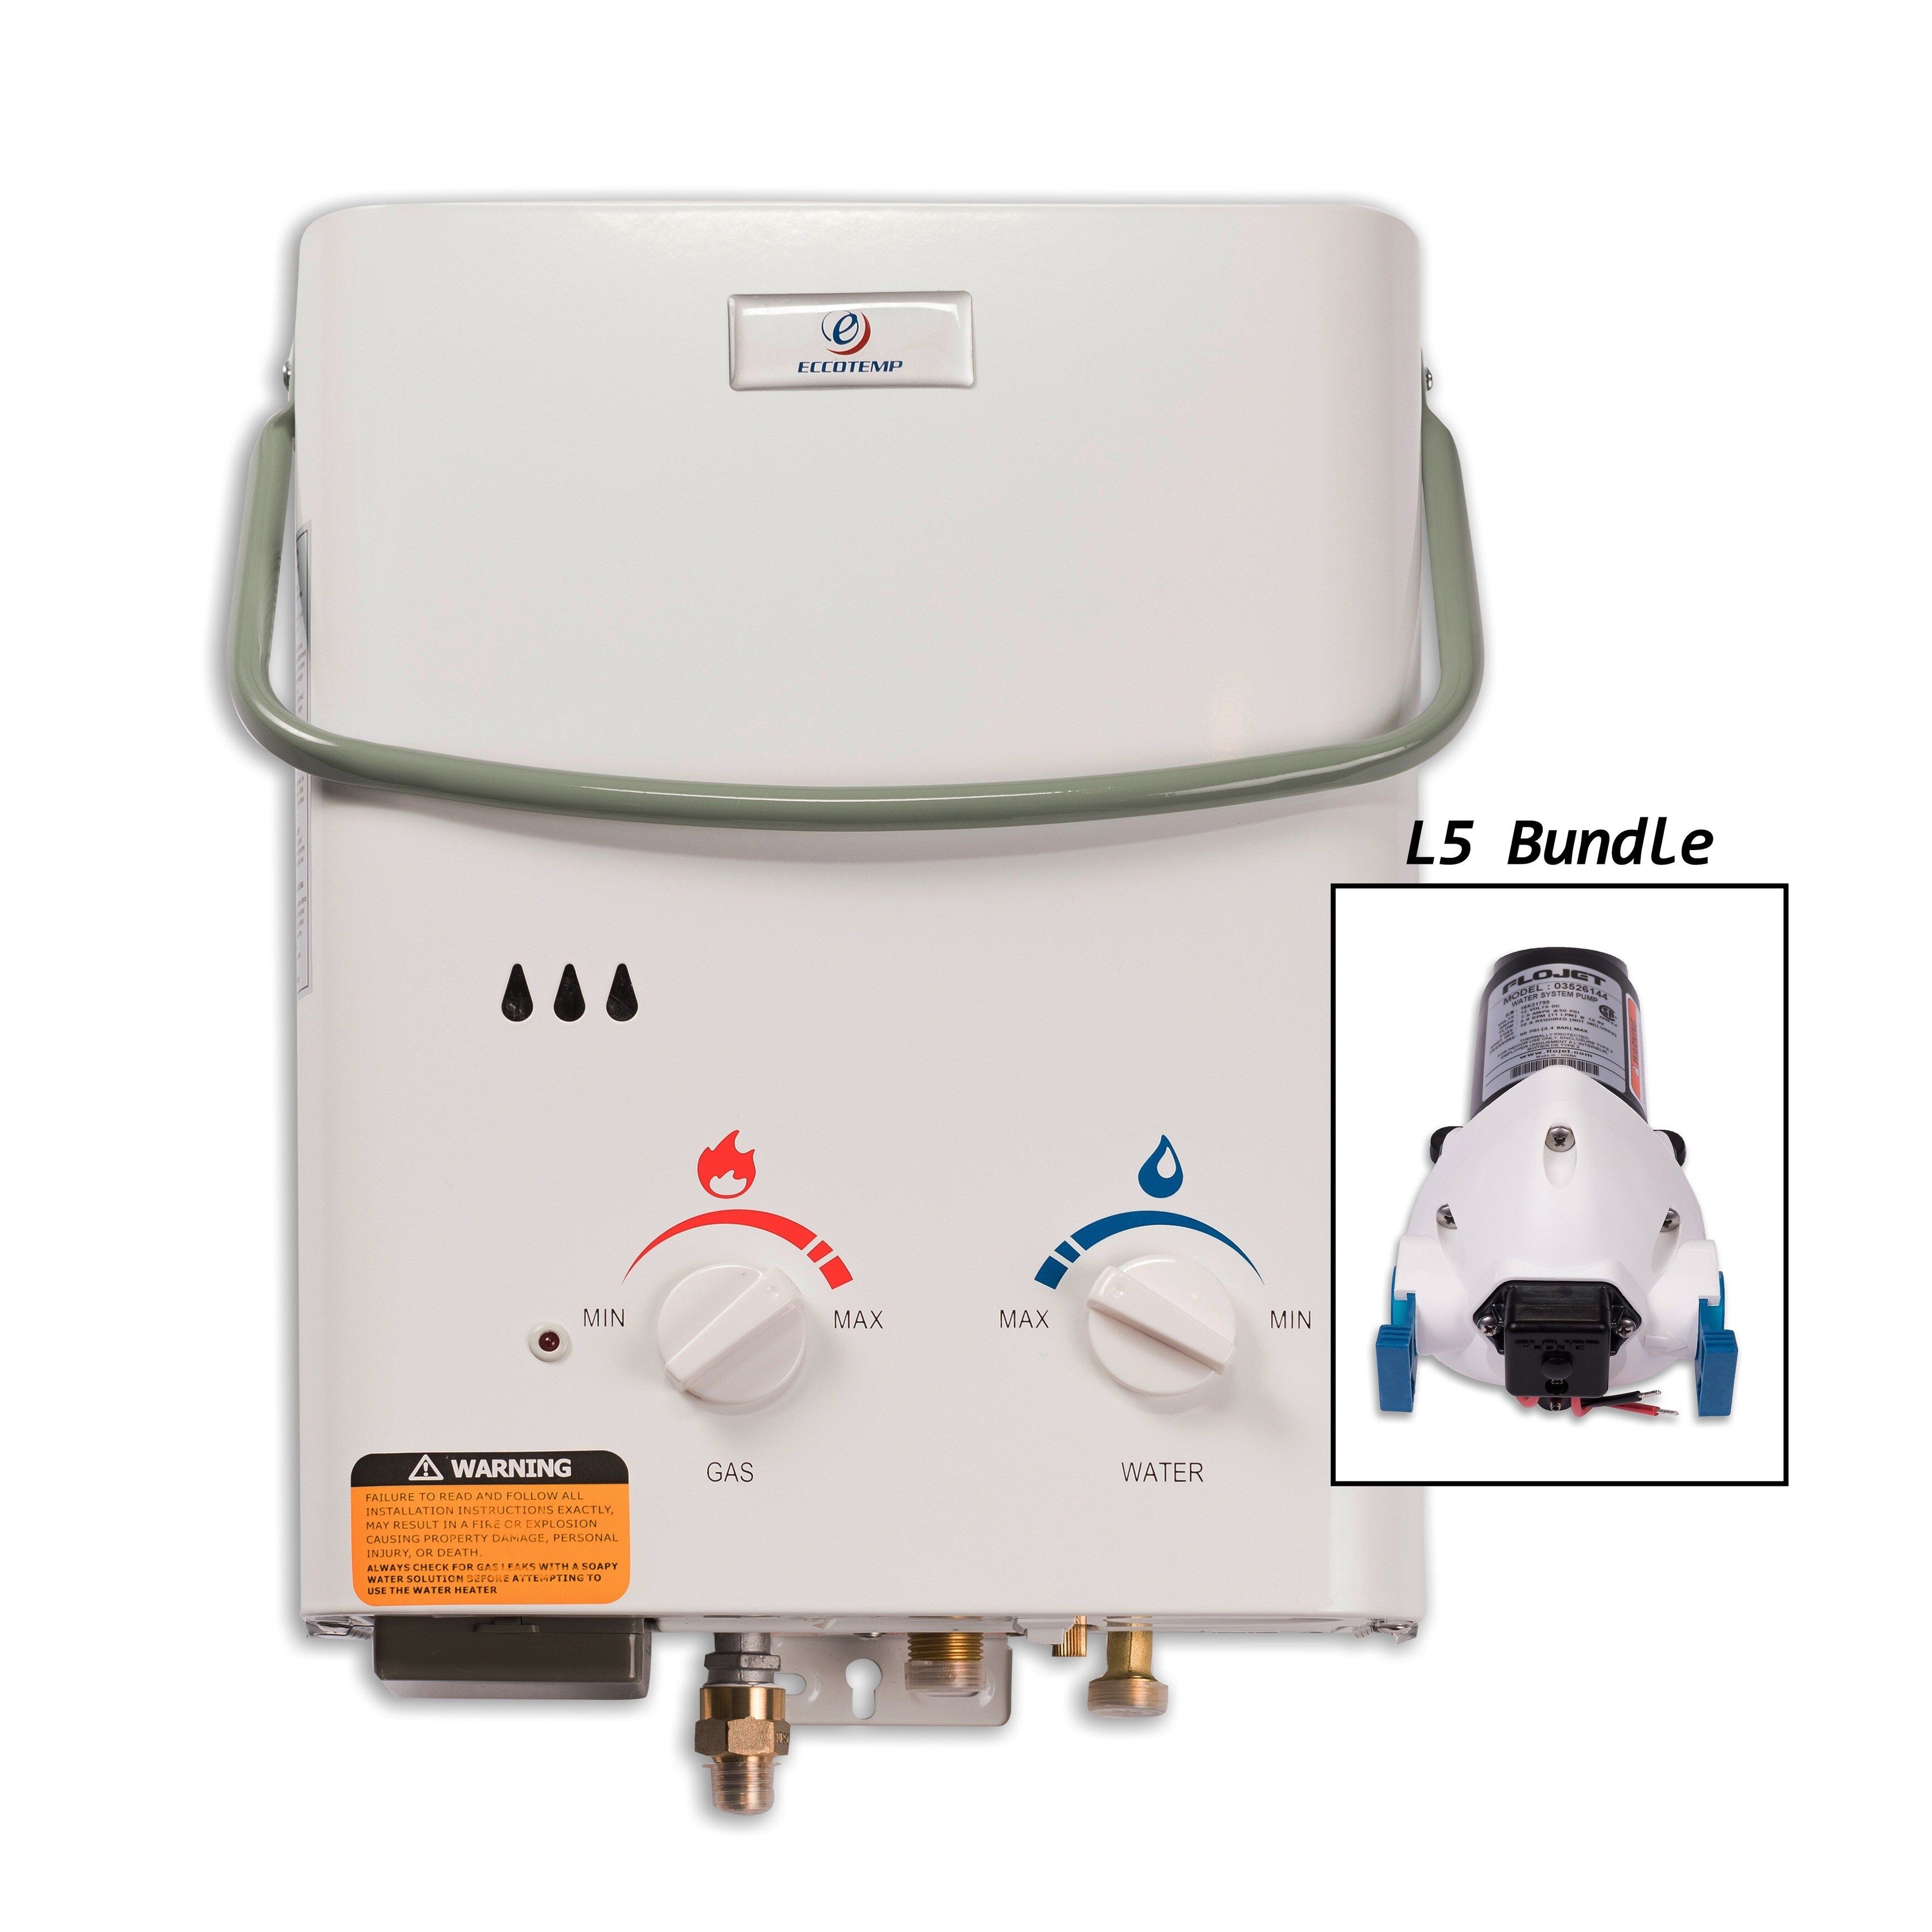 Eccotemp L5 Tankless Water Heater with Flojet Pump (Color...